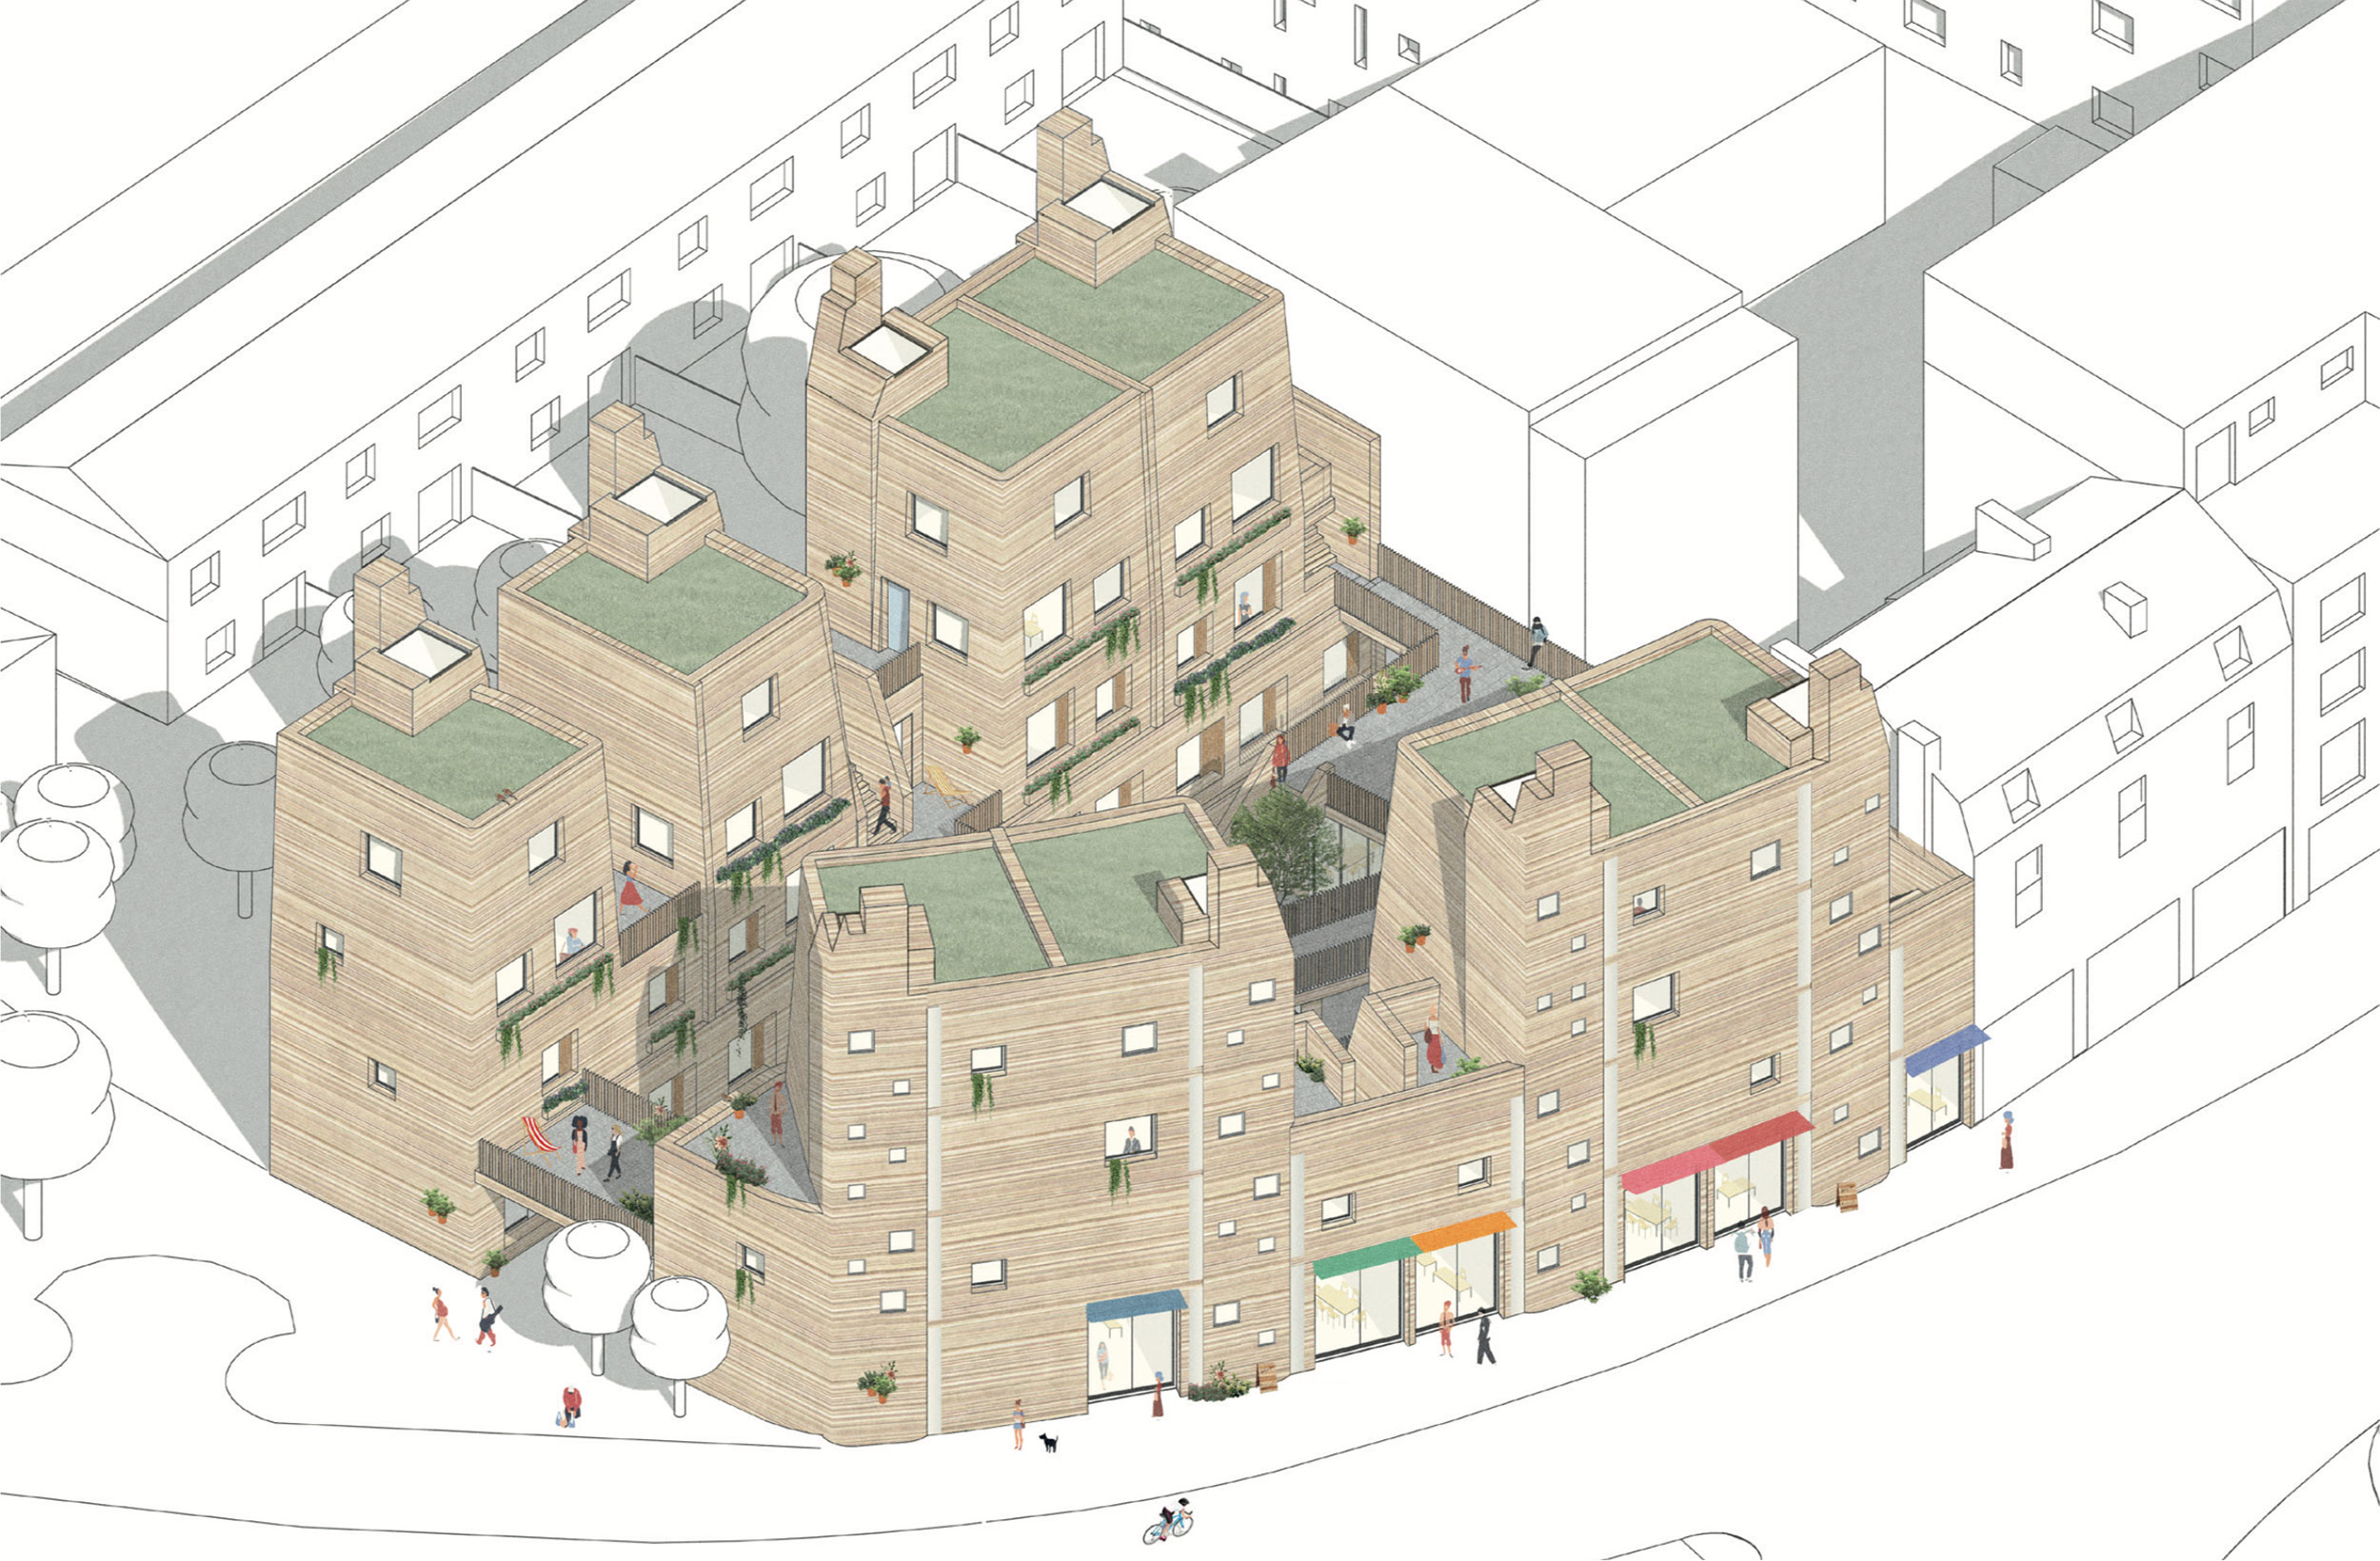 Case study proposal for an underused garage site close to the Lea Bridge roundabout.